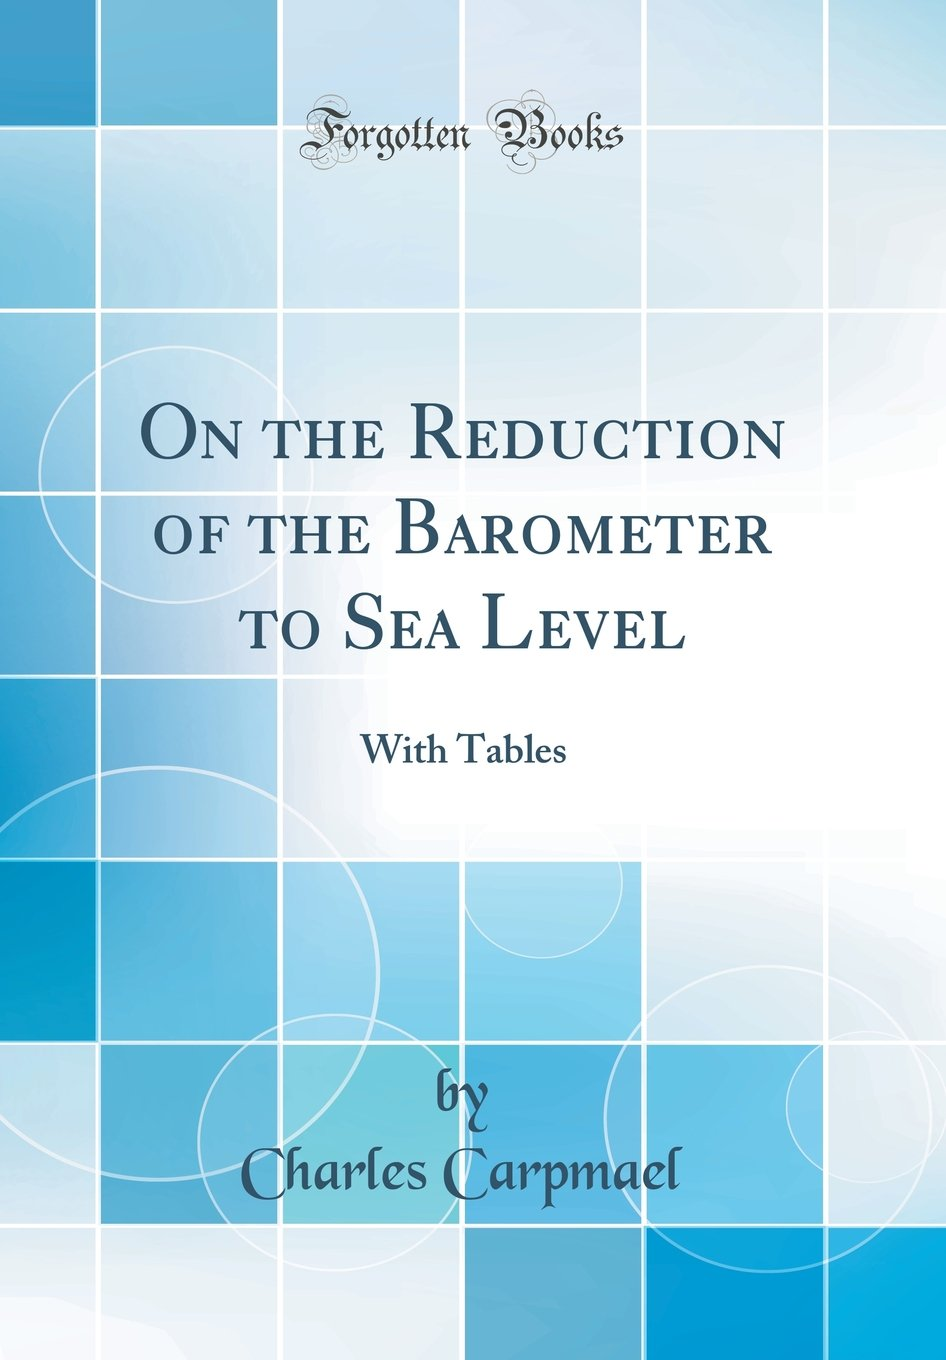 Download On the Reduction of the Barometer to Sea Level: With Tables (Classic Reprint) ePub fb2 book